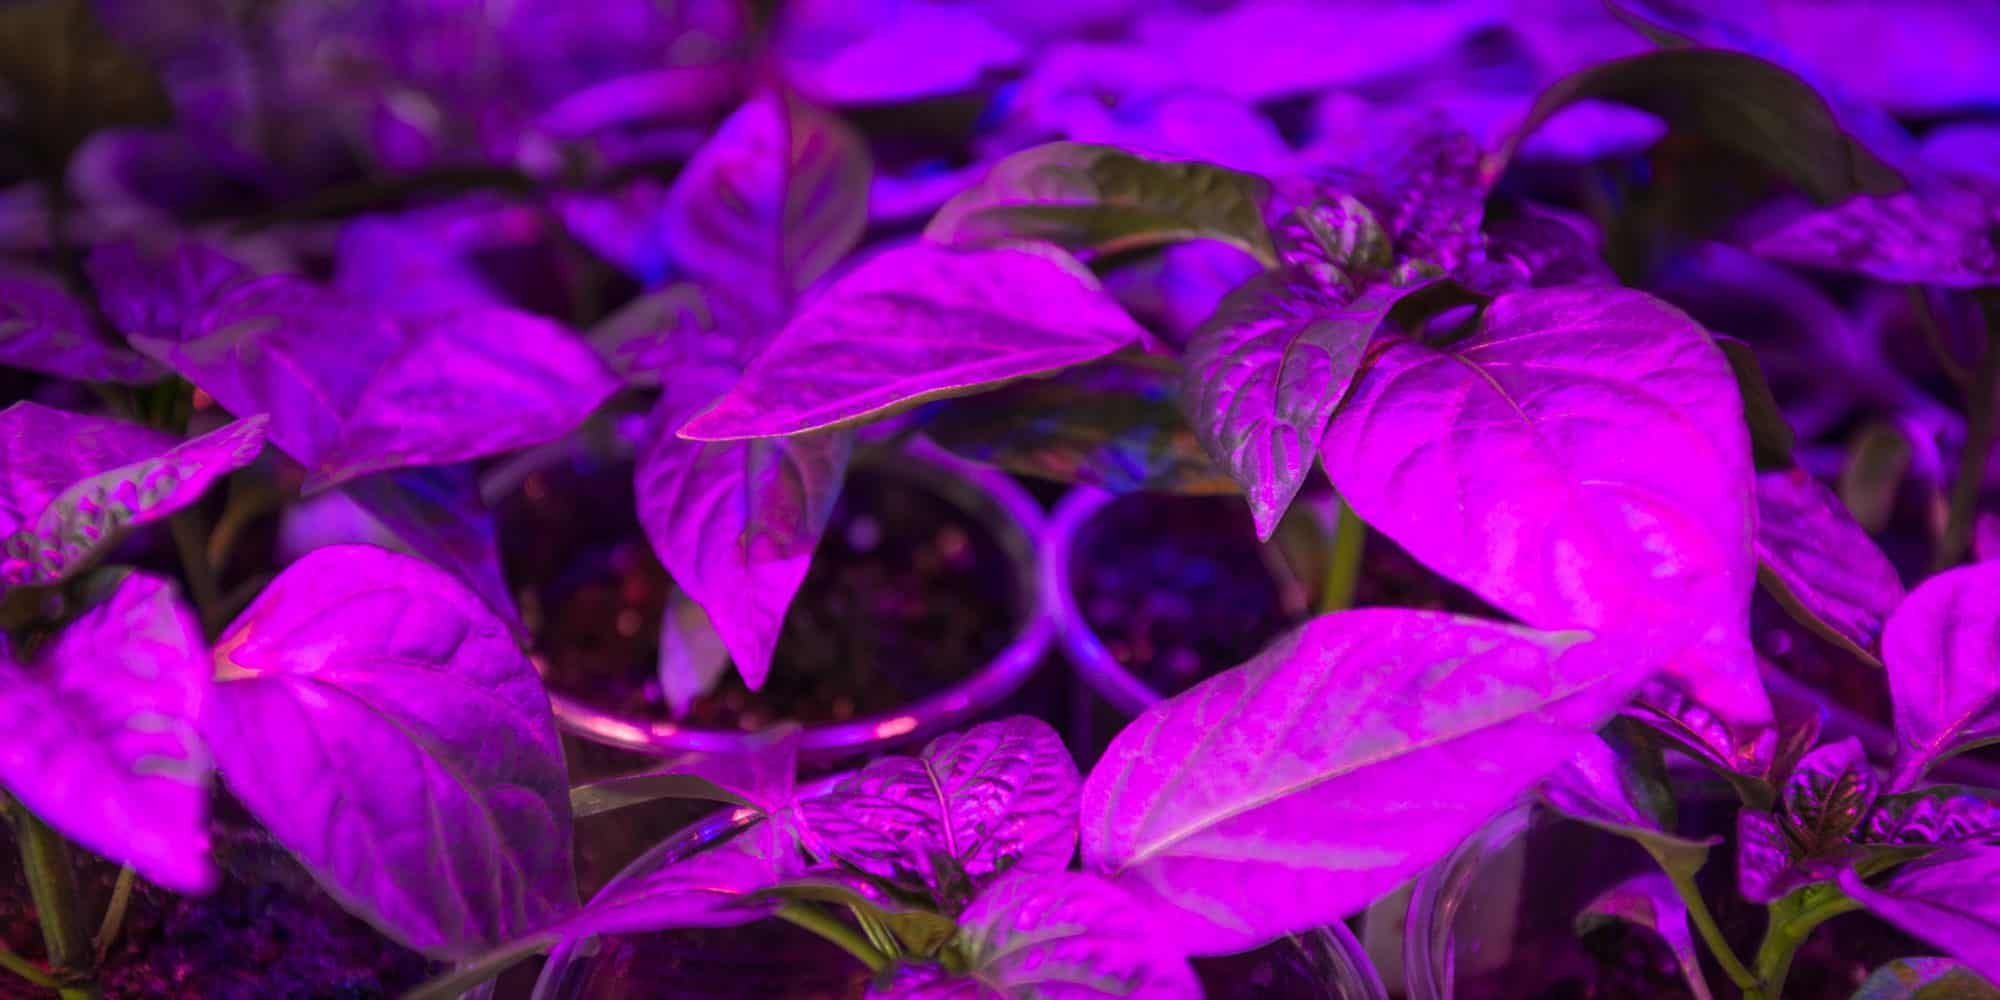 Final Tips To Think About Before Buying A LED Grow Light